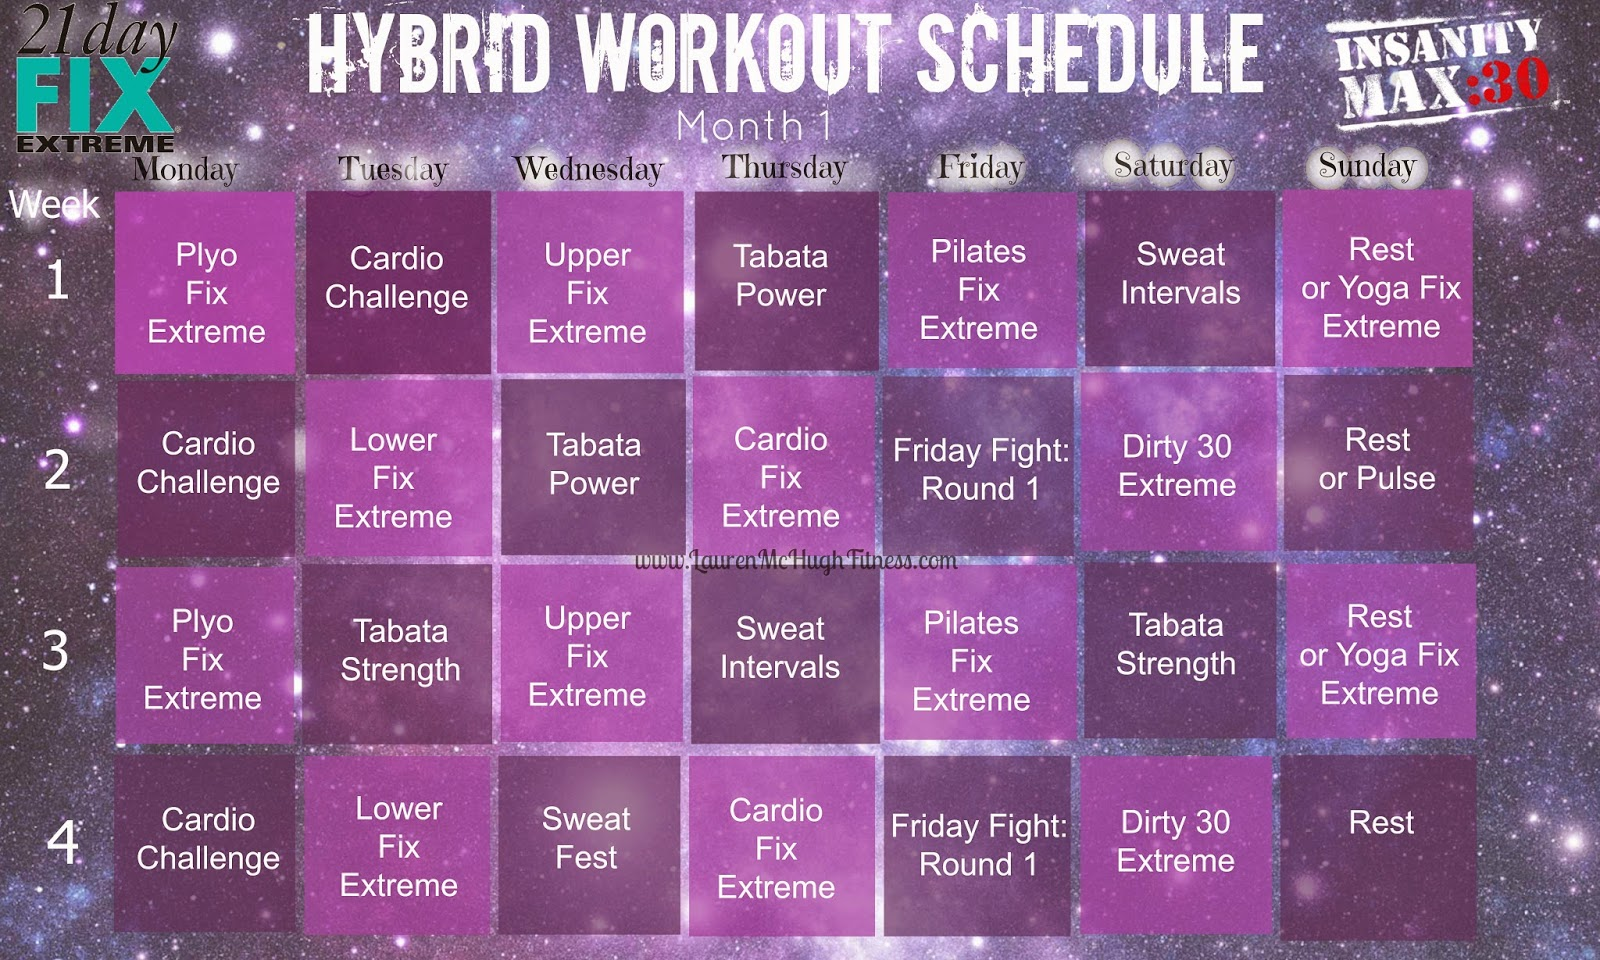 ... Extreme and Insanity Max: 30 Hybrid Workout Calendar | Lauren McHugh